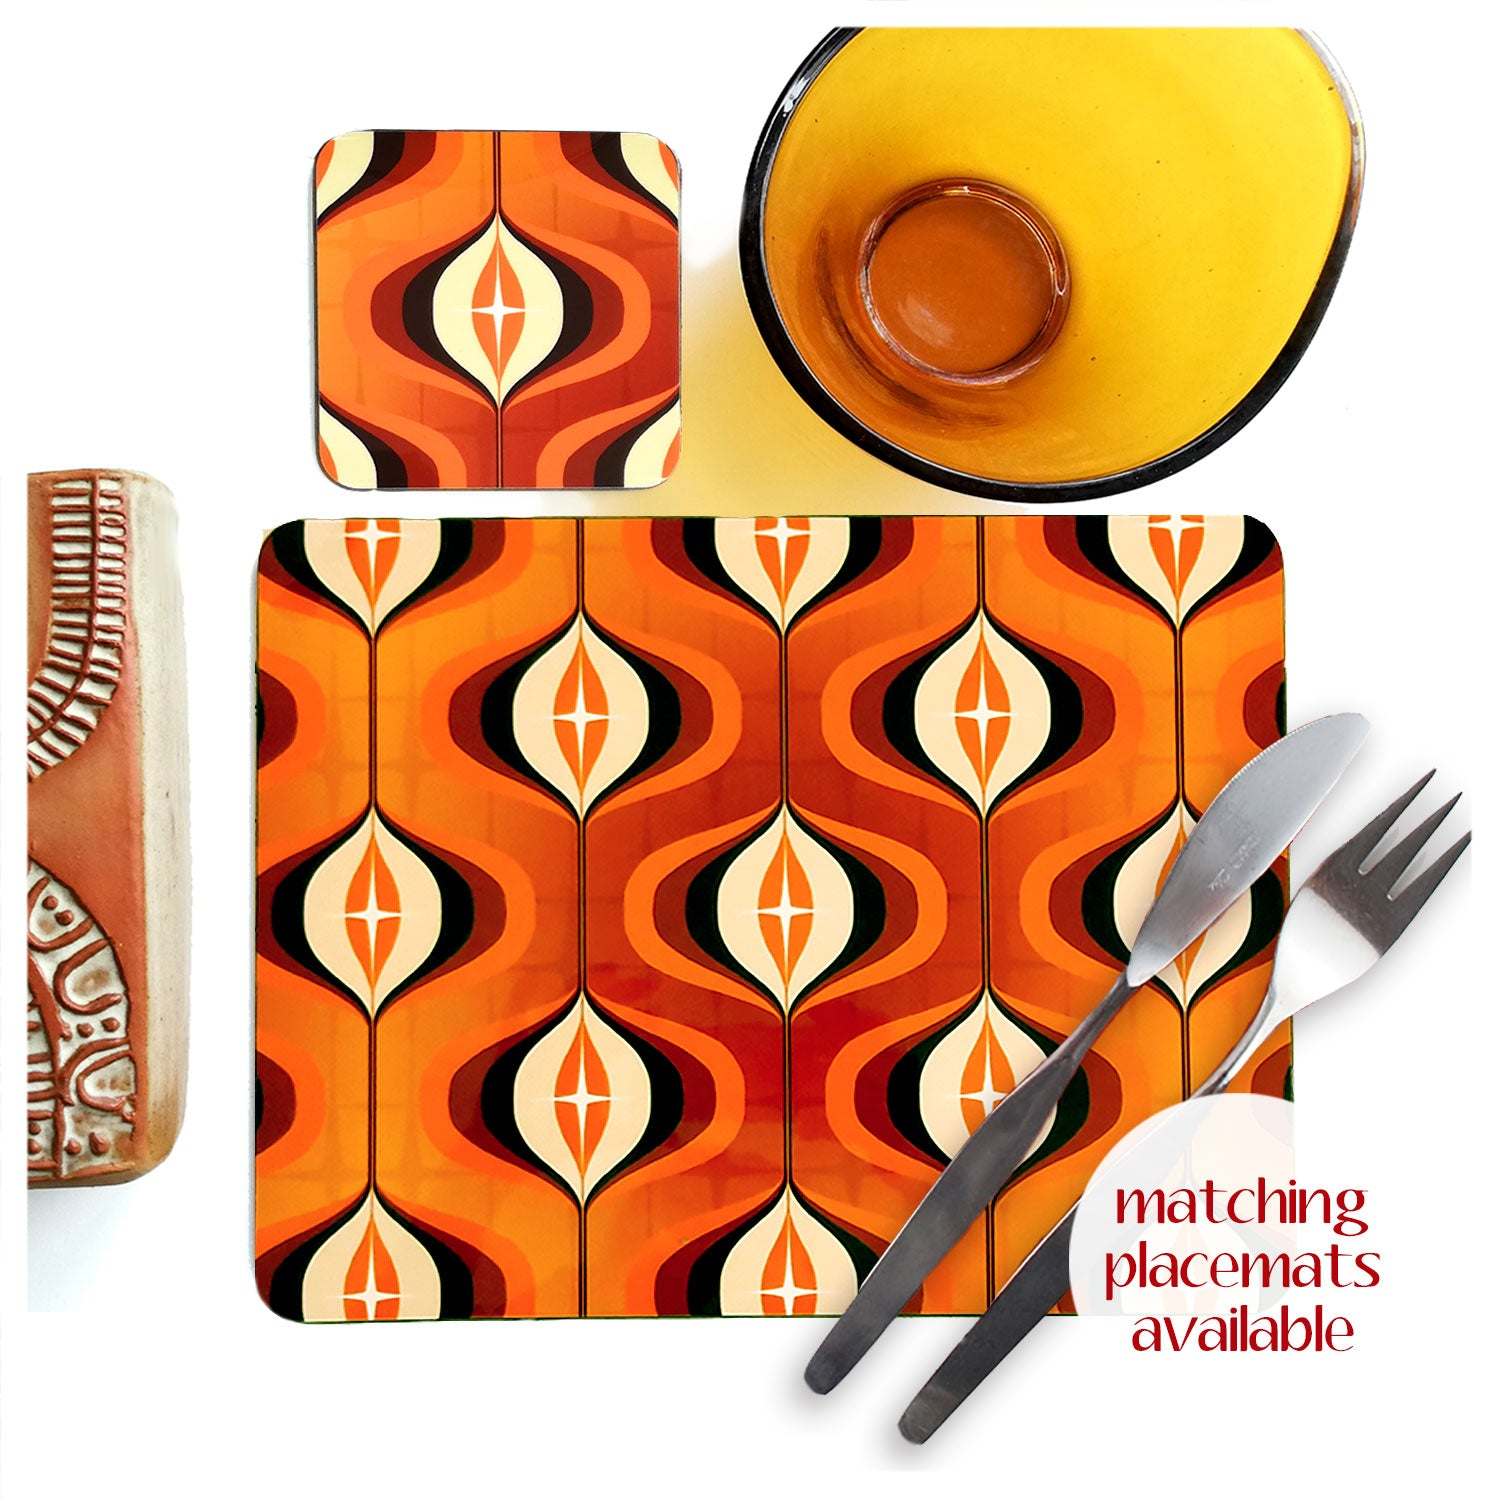 Matching 1970s Op Art placemats available  | The Inkabilly Emporium